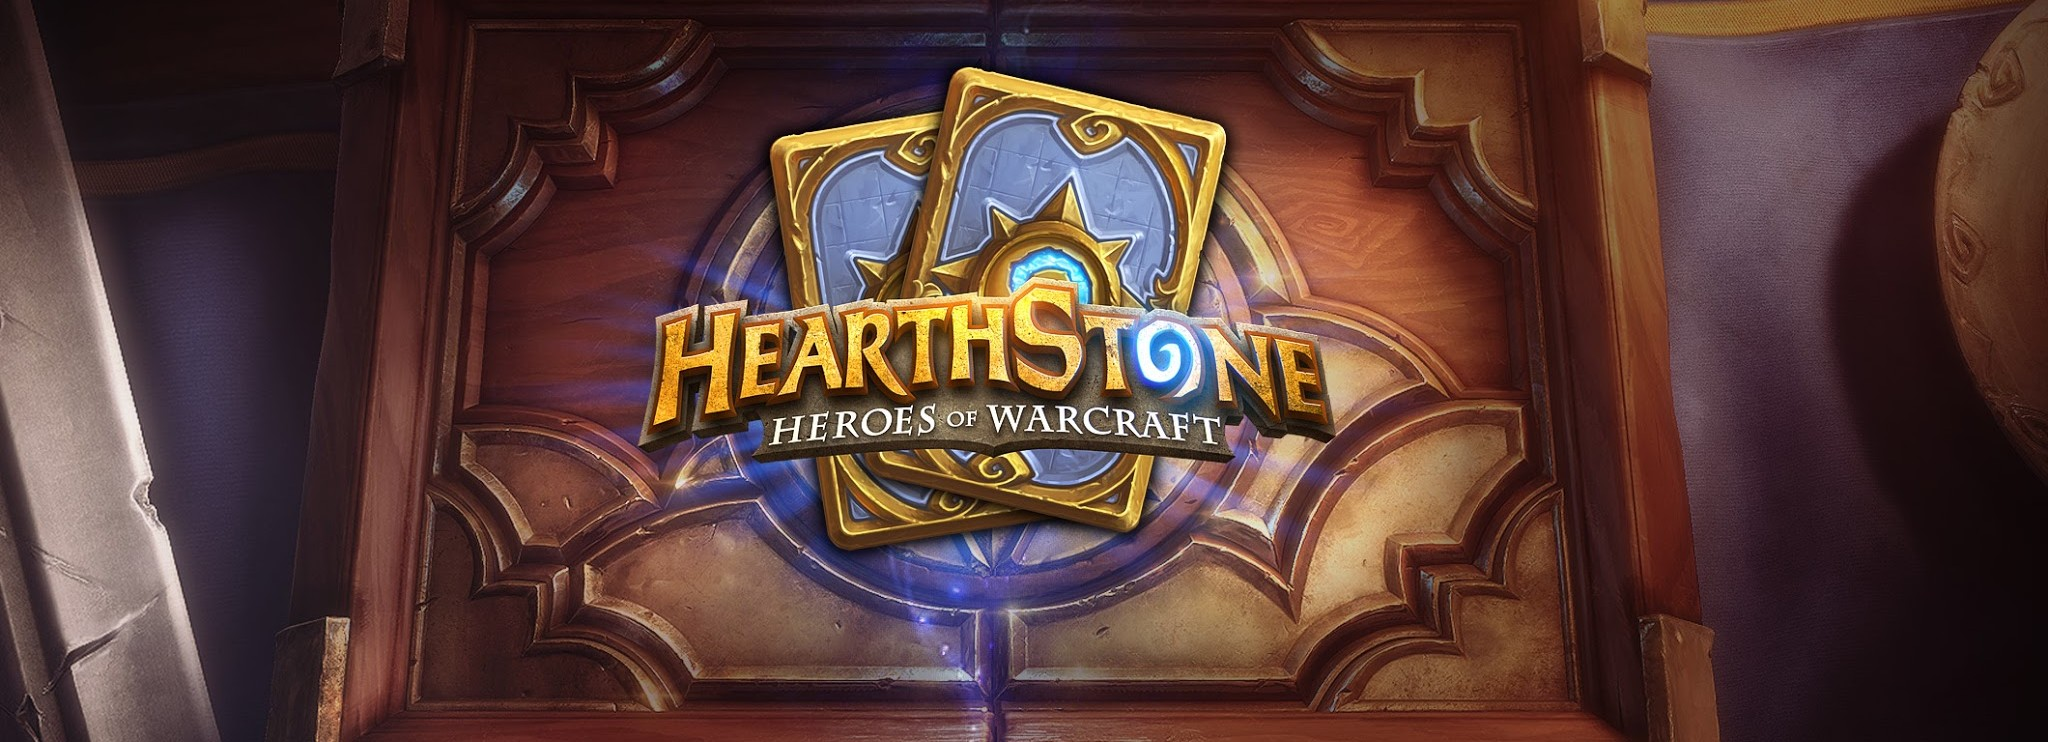 hearthstone-tutorial-p1_1